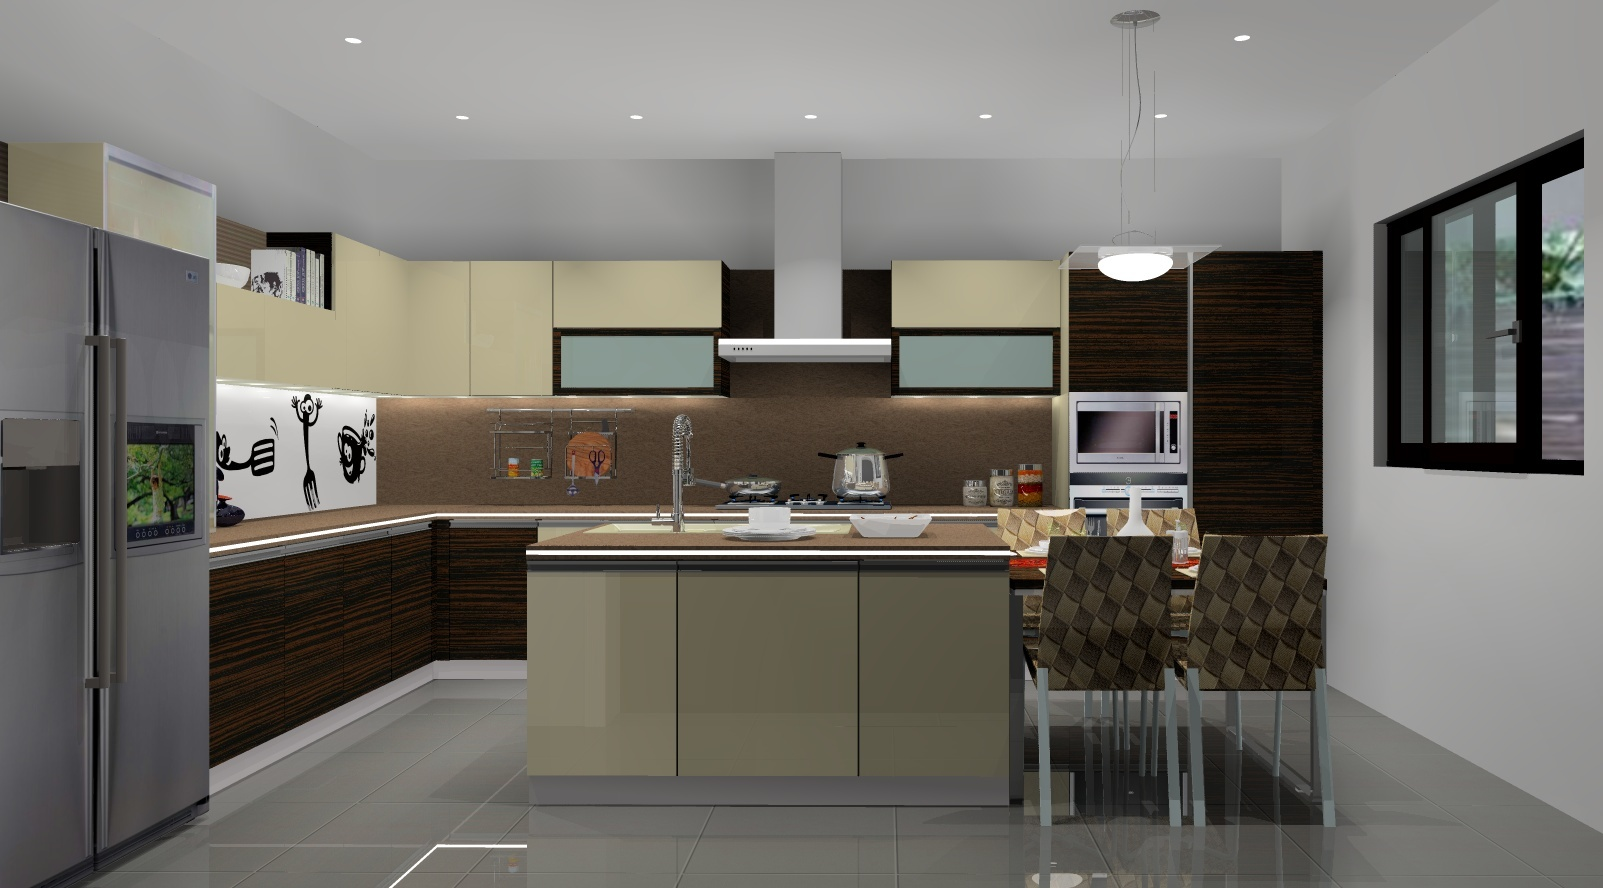 DesigningKitchen  The Home Makers India - Designing kitchen